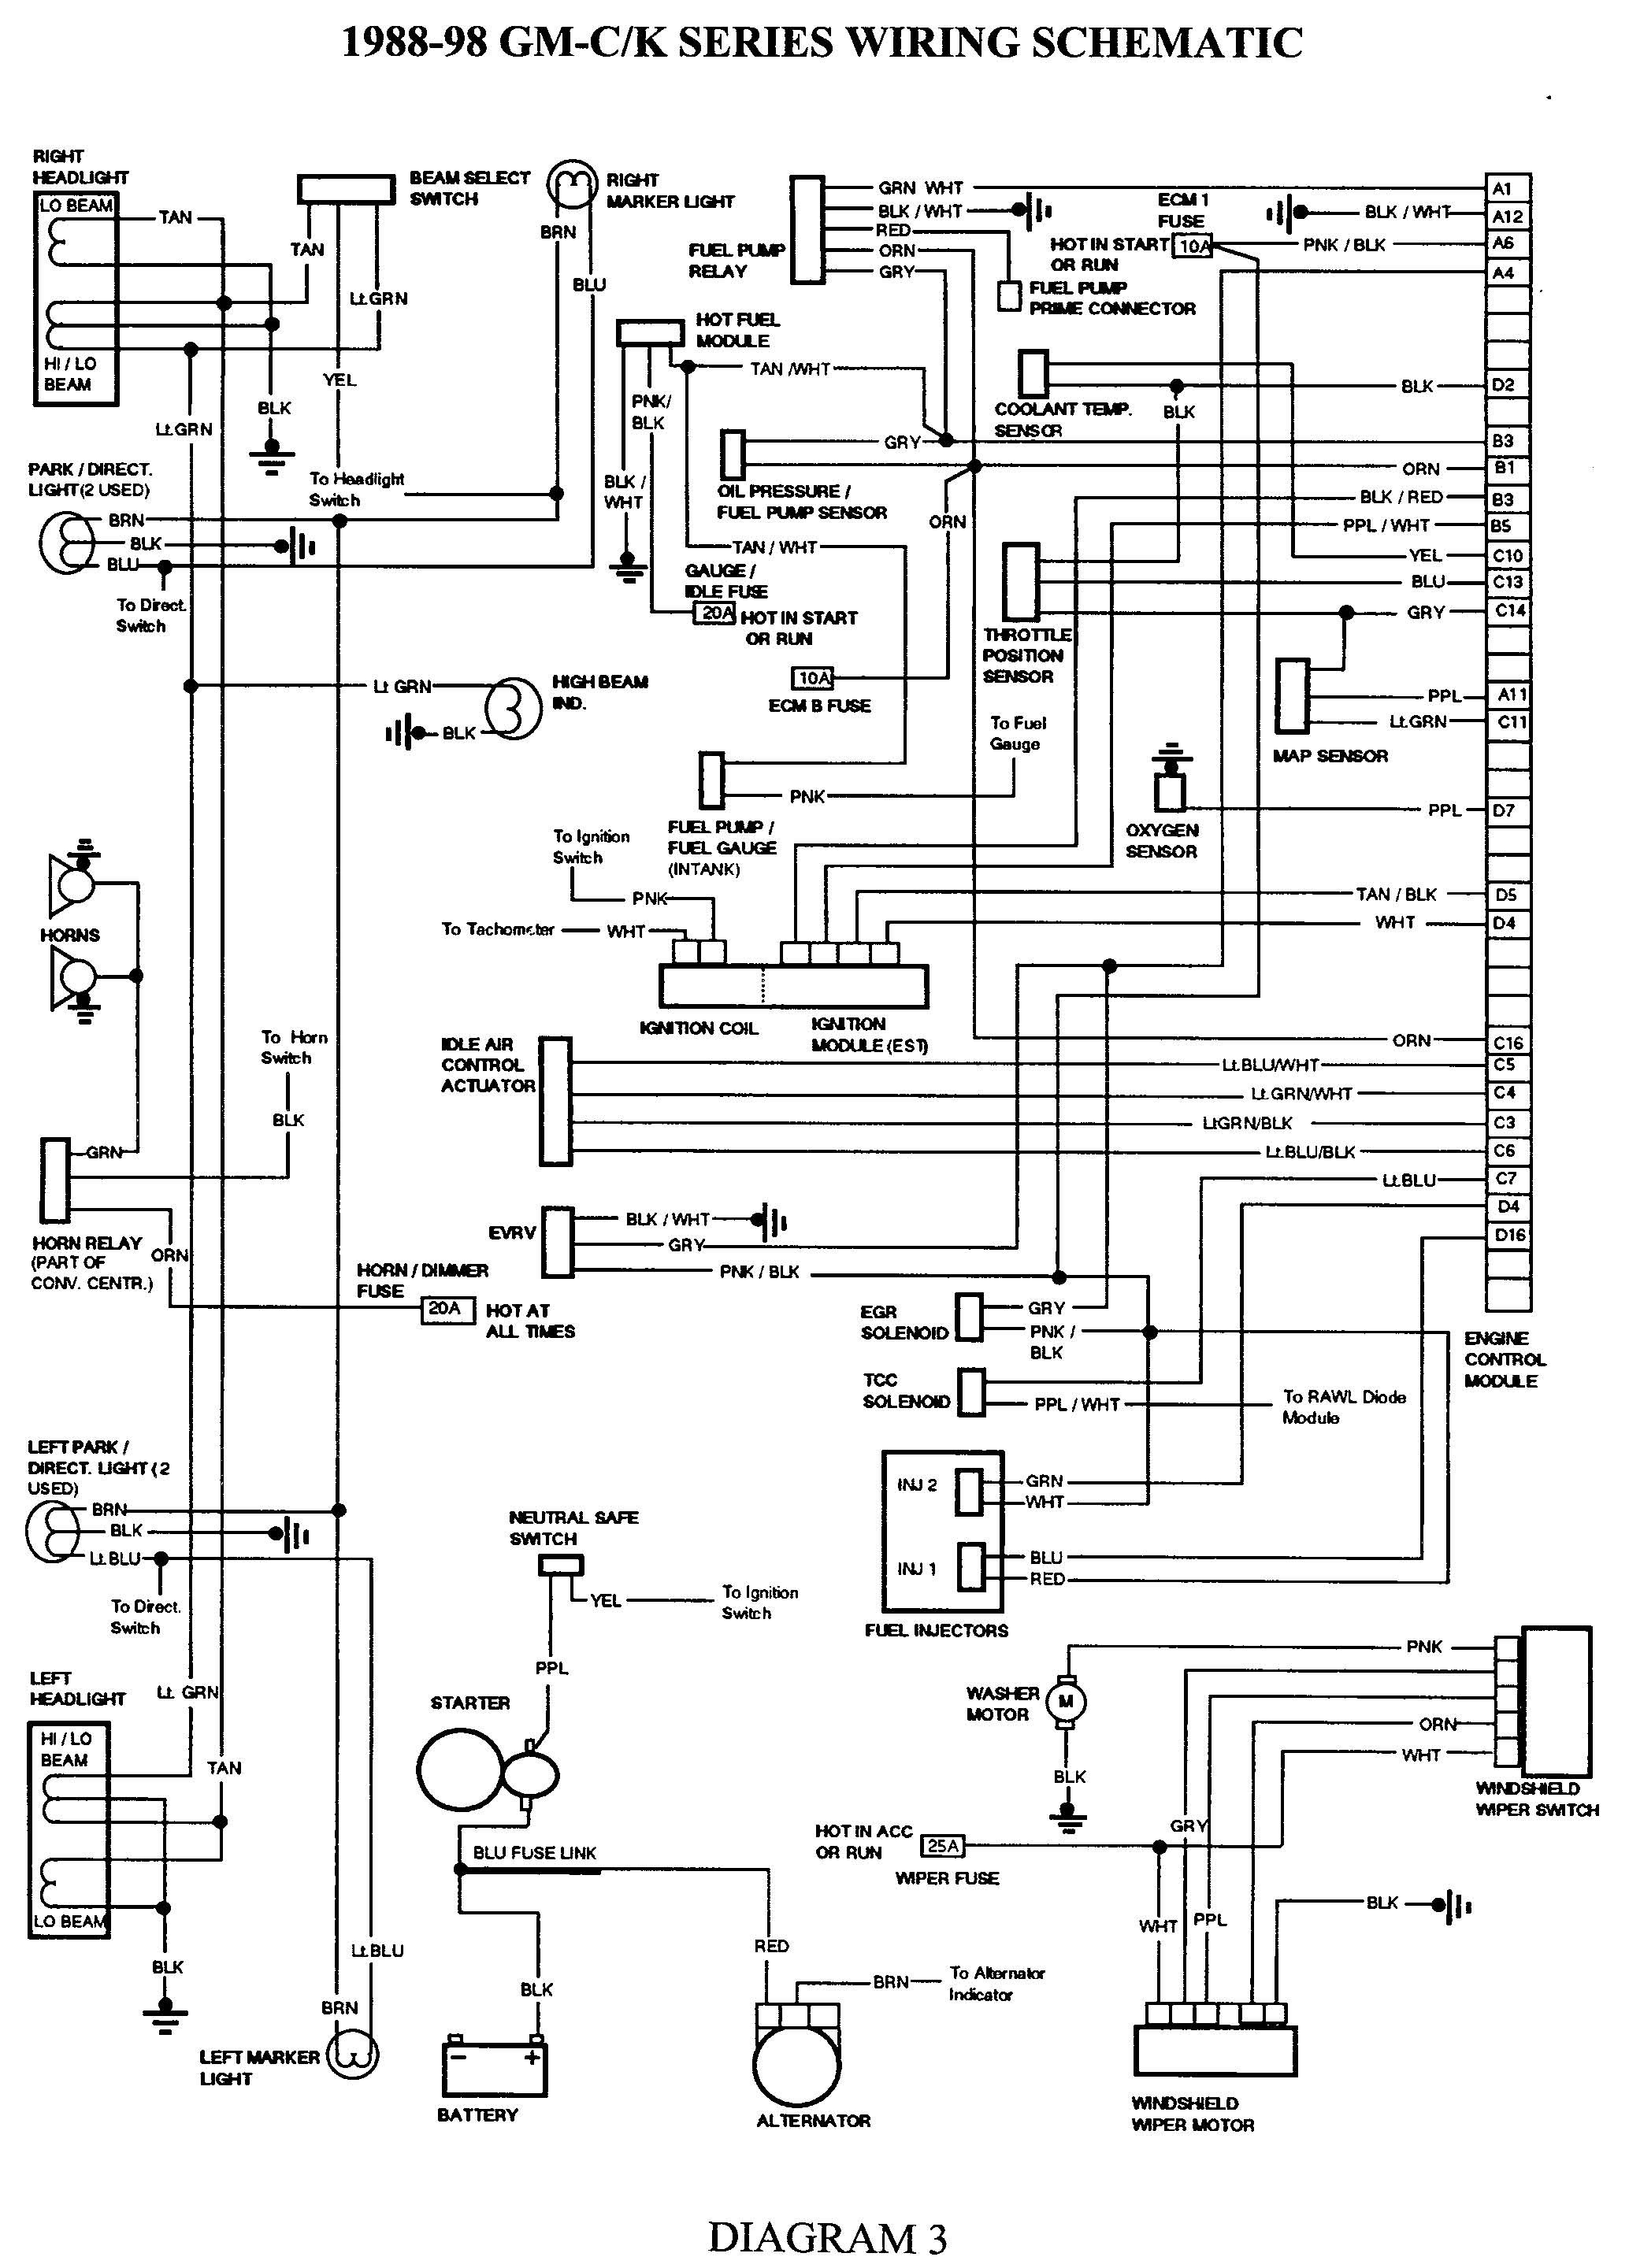 1999 Lincoln Town Car Engine Diagram Wiring Library Wire Schematics 98 Gmc Sierra Headlight Circuit Diagrams Image Of